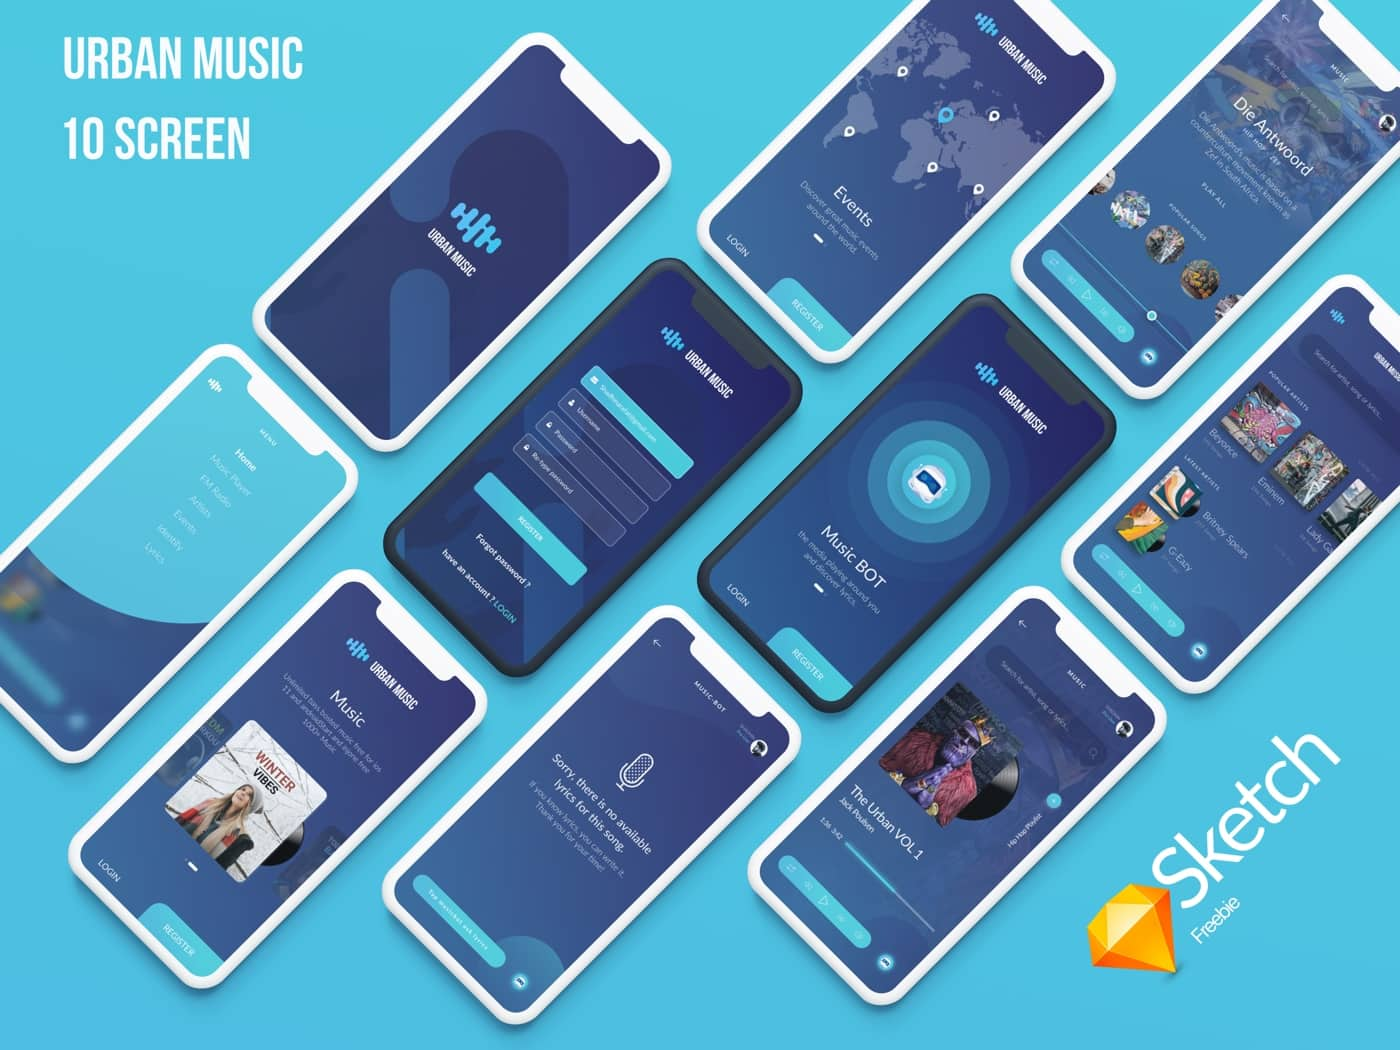 Urban Music UI Kit from UIGarage